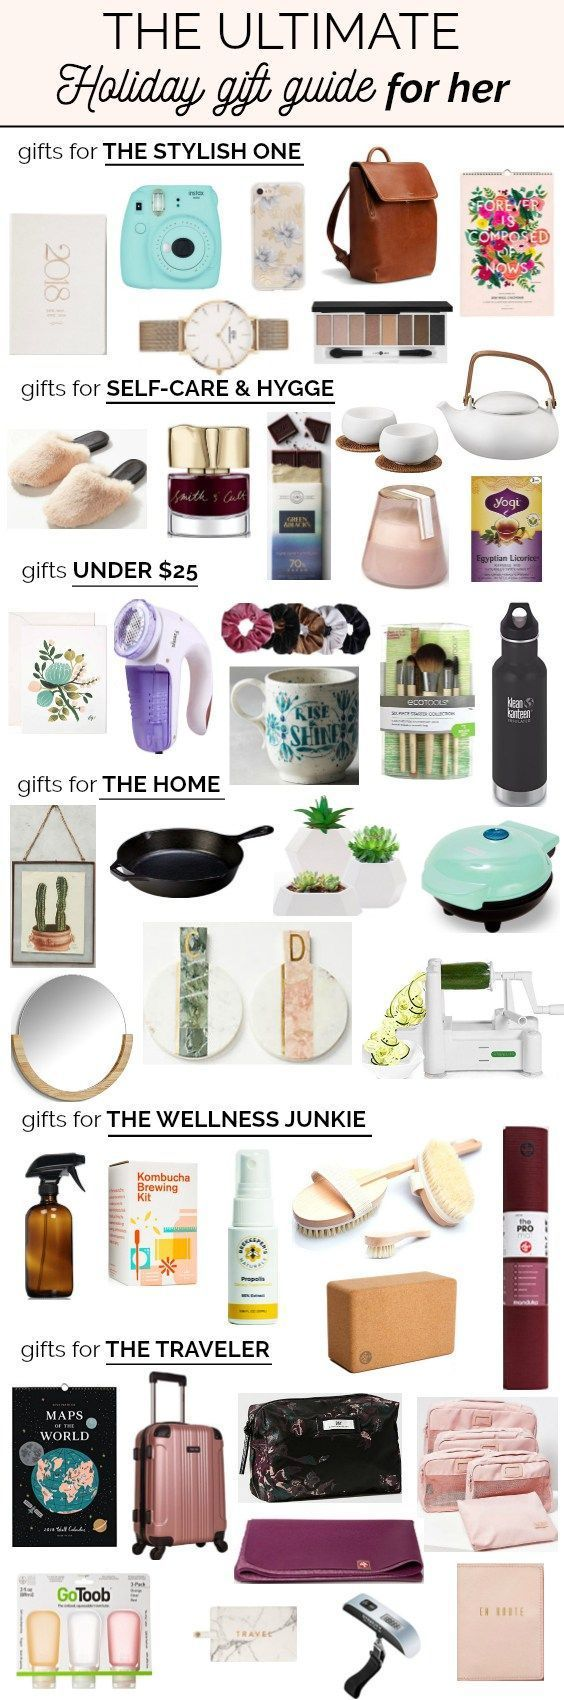 552 best Gift Ideas for Women images on Pinterest | A holiday ...